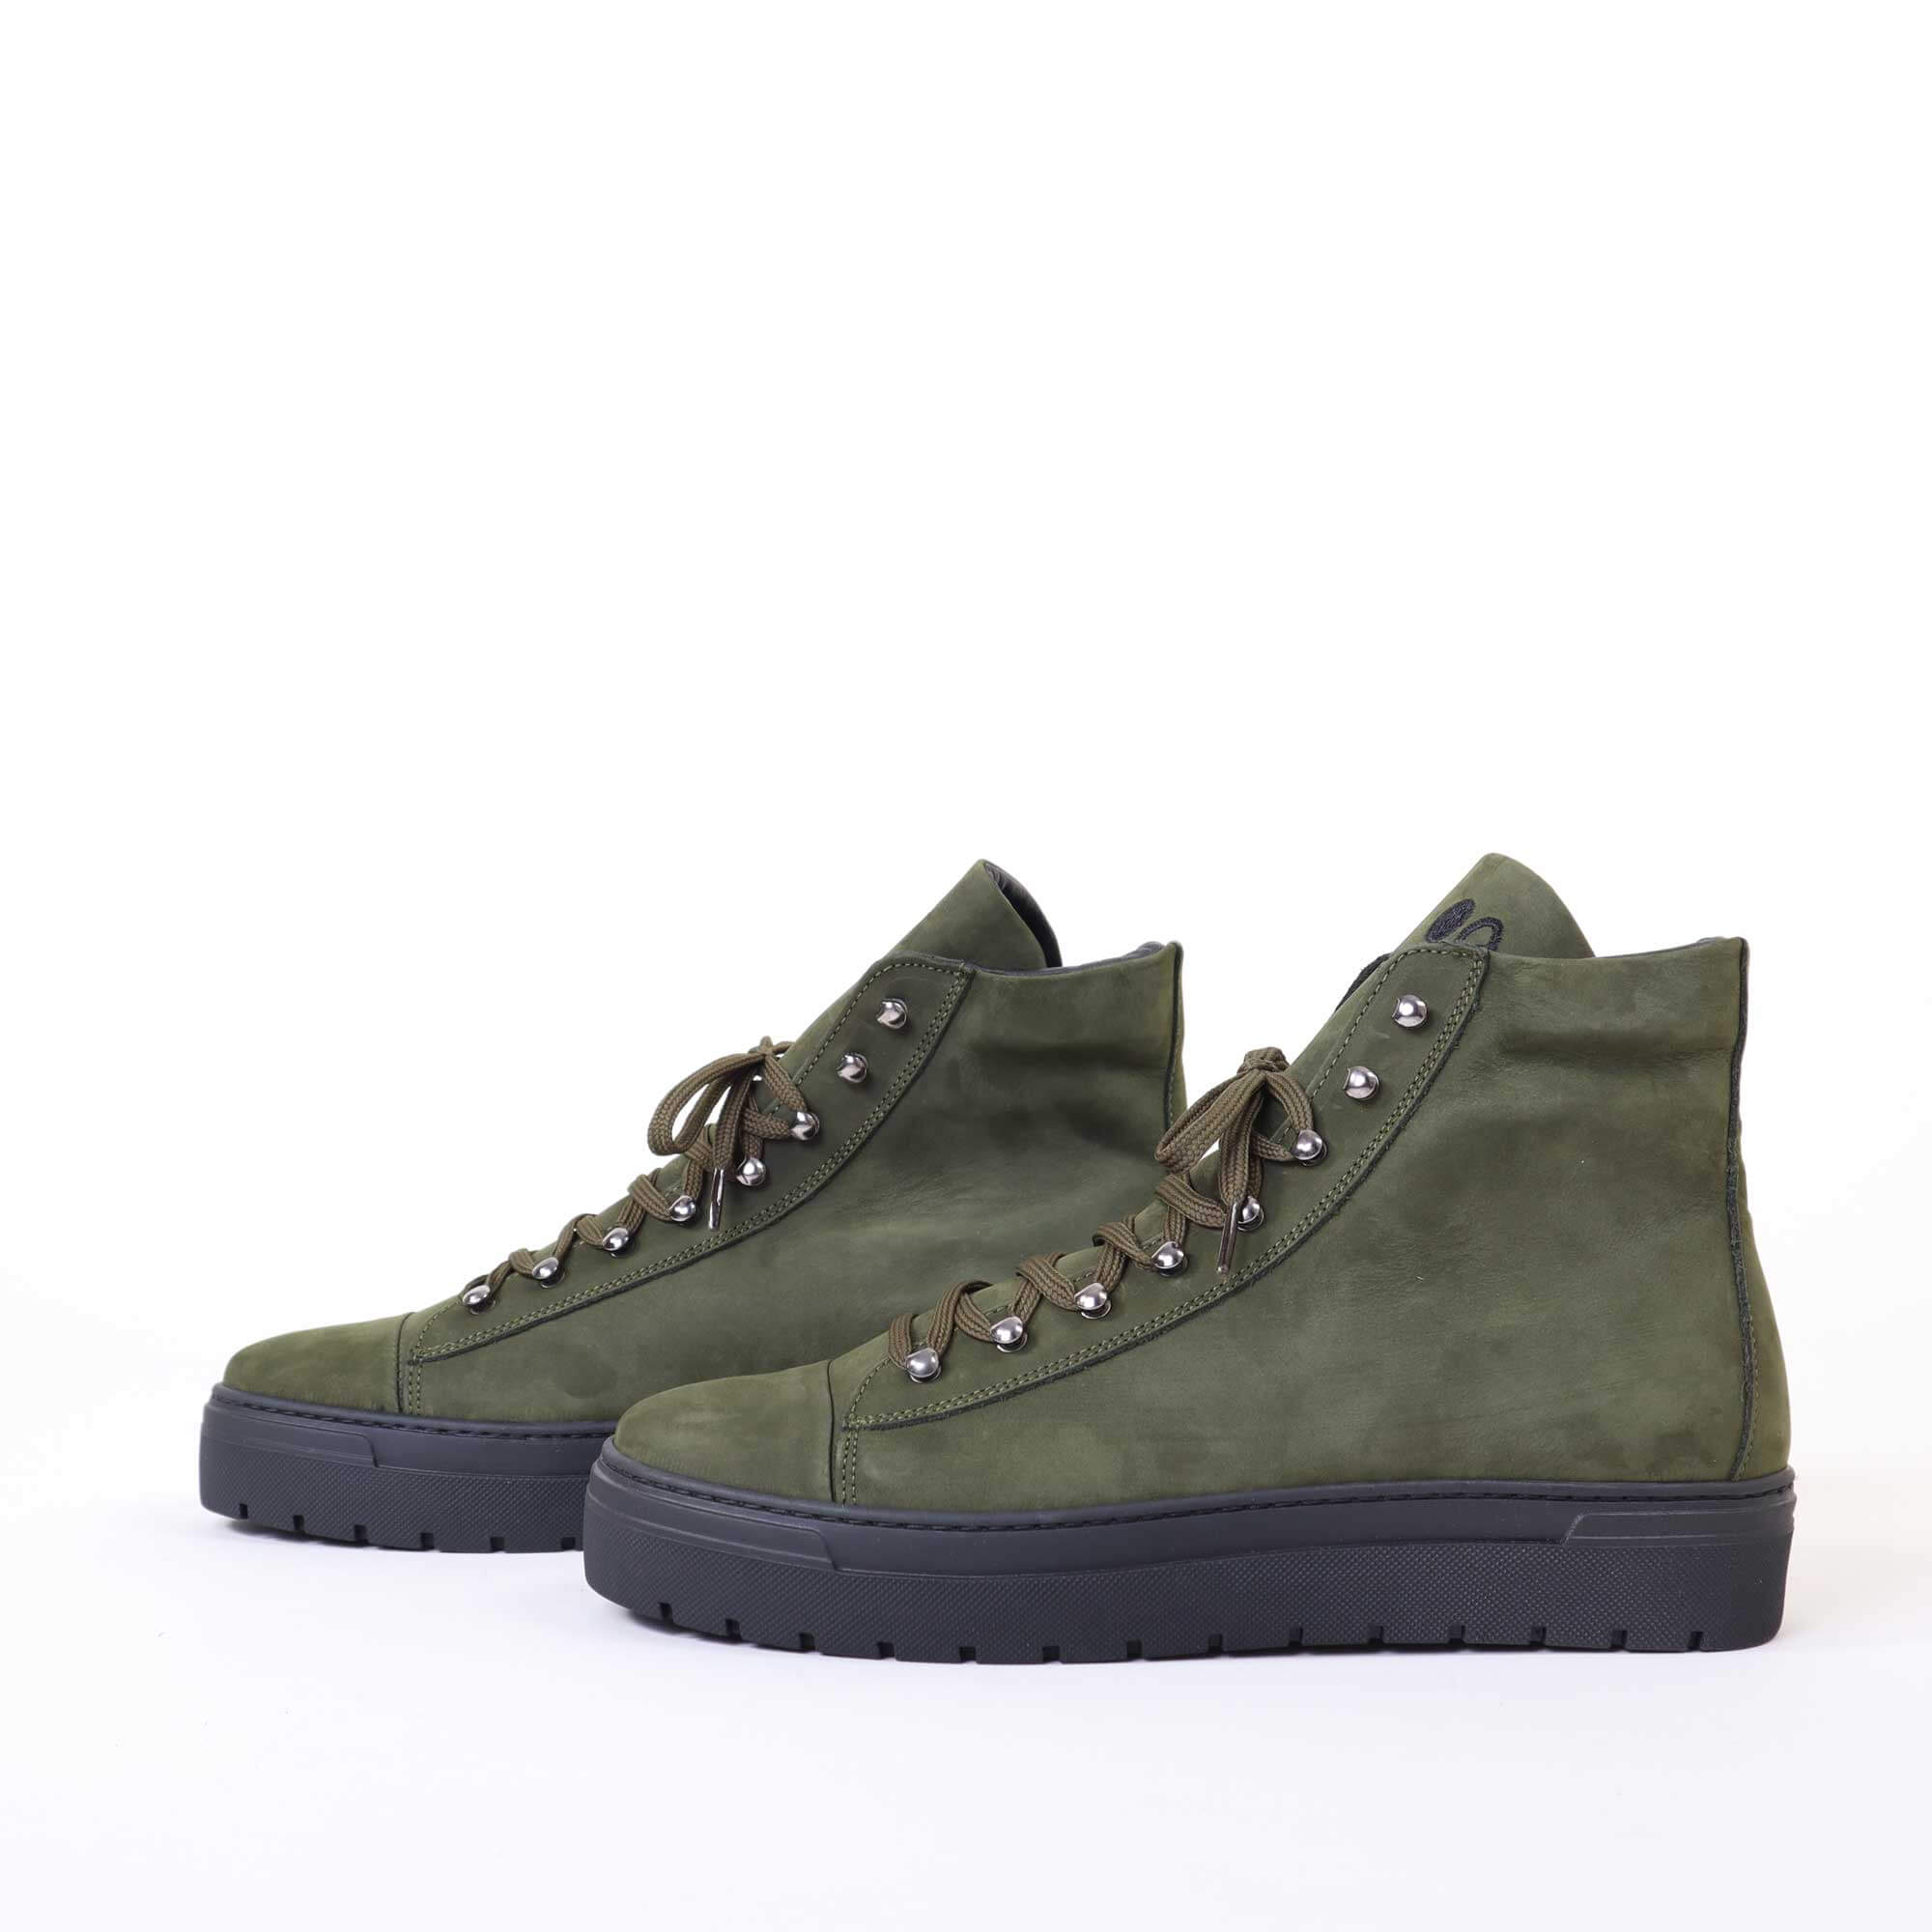 sneakers-h-green-3